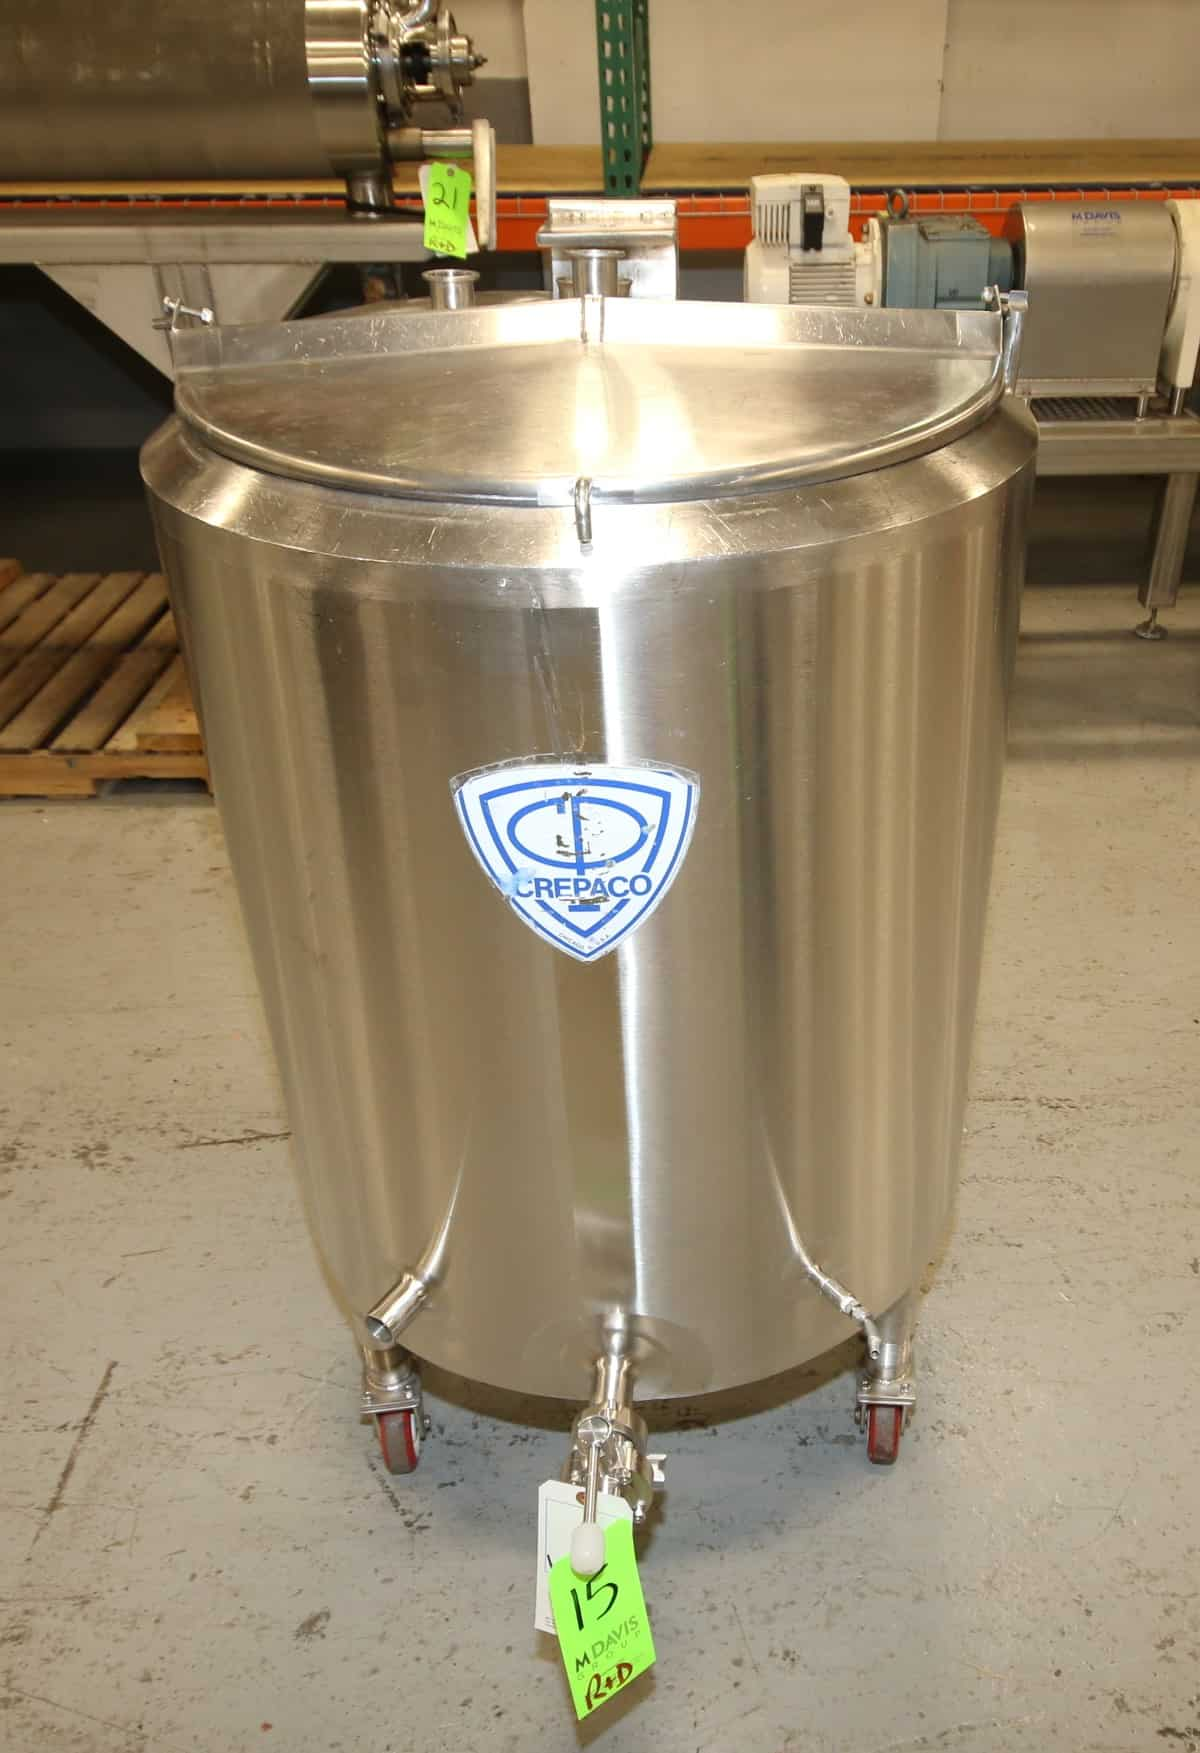 "APV Crepaco Aprox. 50 Gal. Jacketed Hinged Lid S/S Tank, SN D-118, Mounted on Casters, Equipted with 3/4 hp Top Mounted Agitator, Bottom Side Mounted Butterfly Valve, 75 psig Jacket 315 degree F, (Overall Diam. 28"" W x 50"" H)"